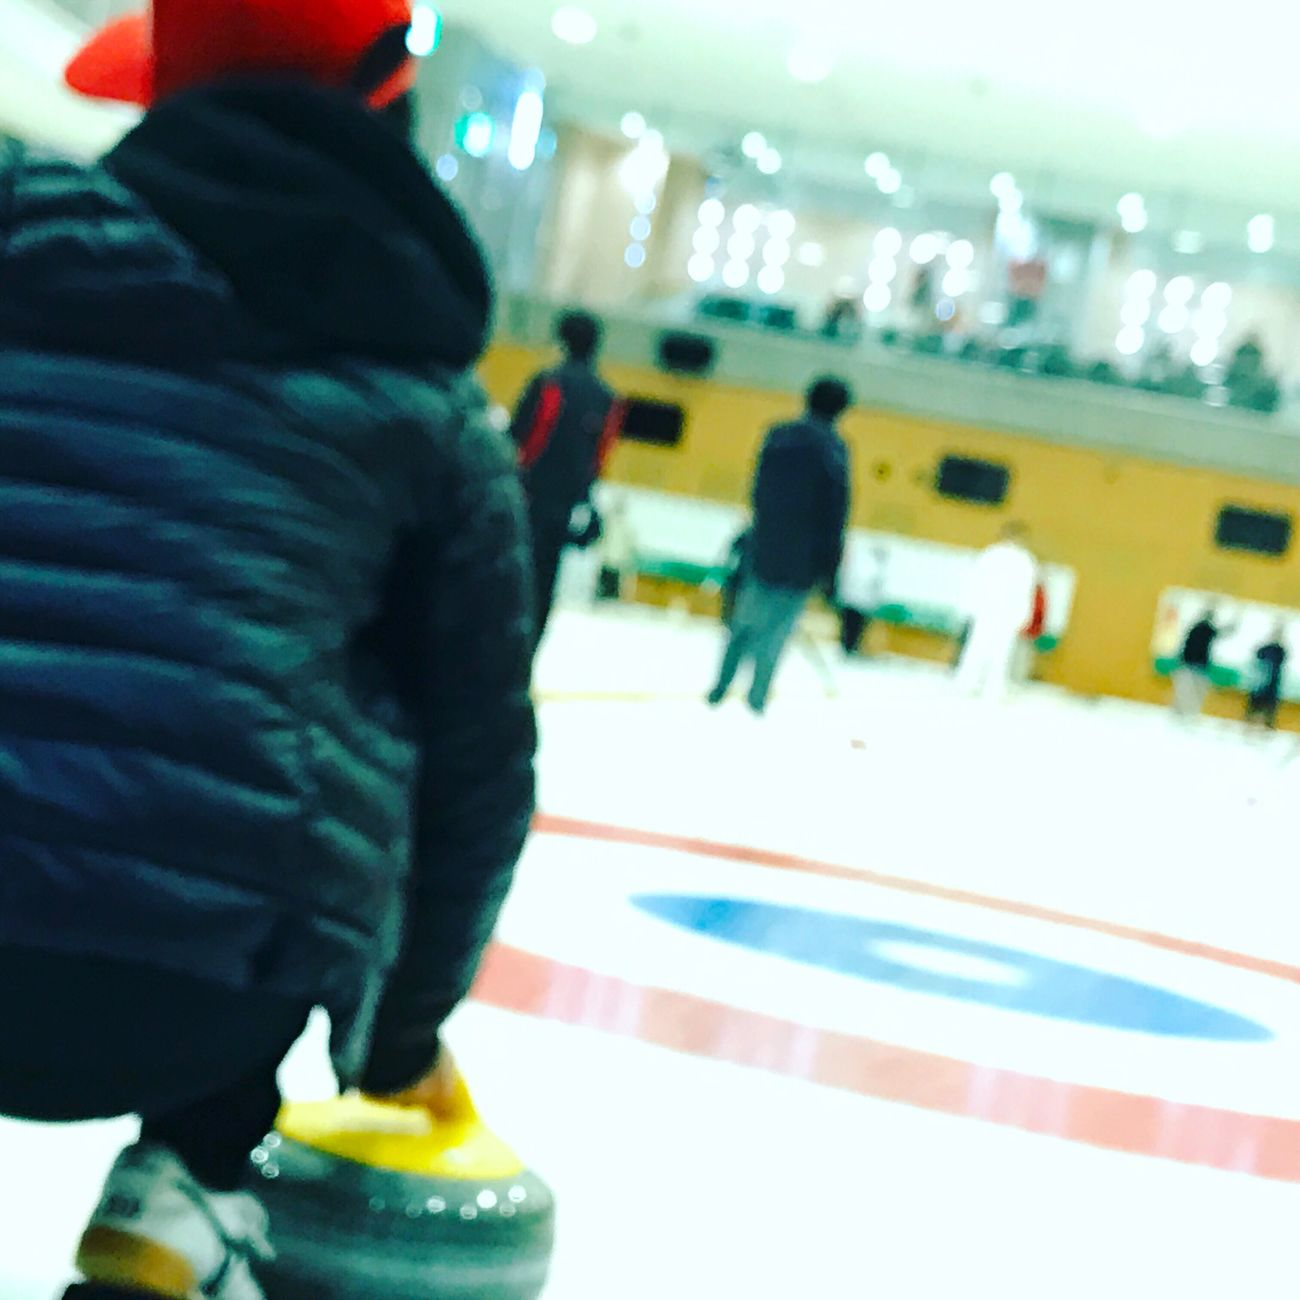 Curling Sport Leisure Activity Target Shooting Ice Rink Day